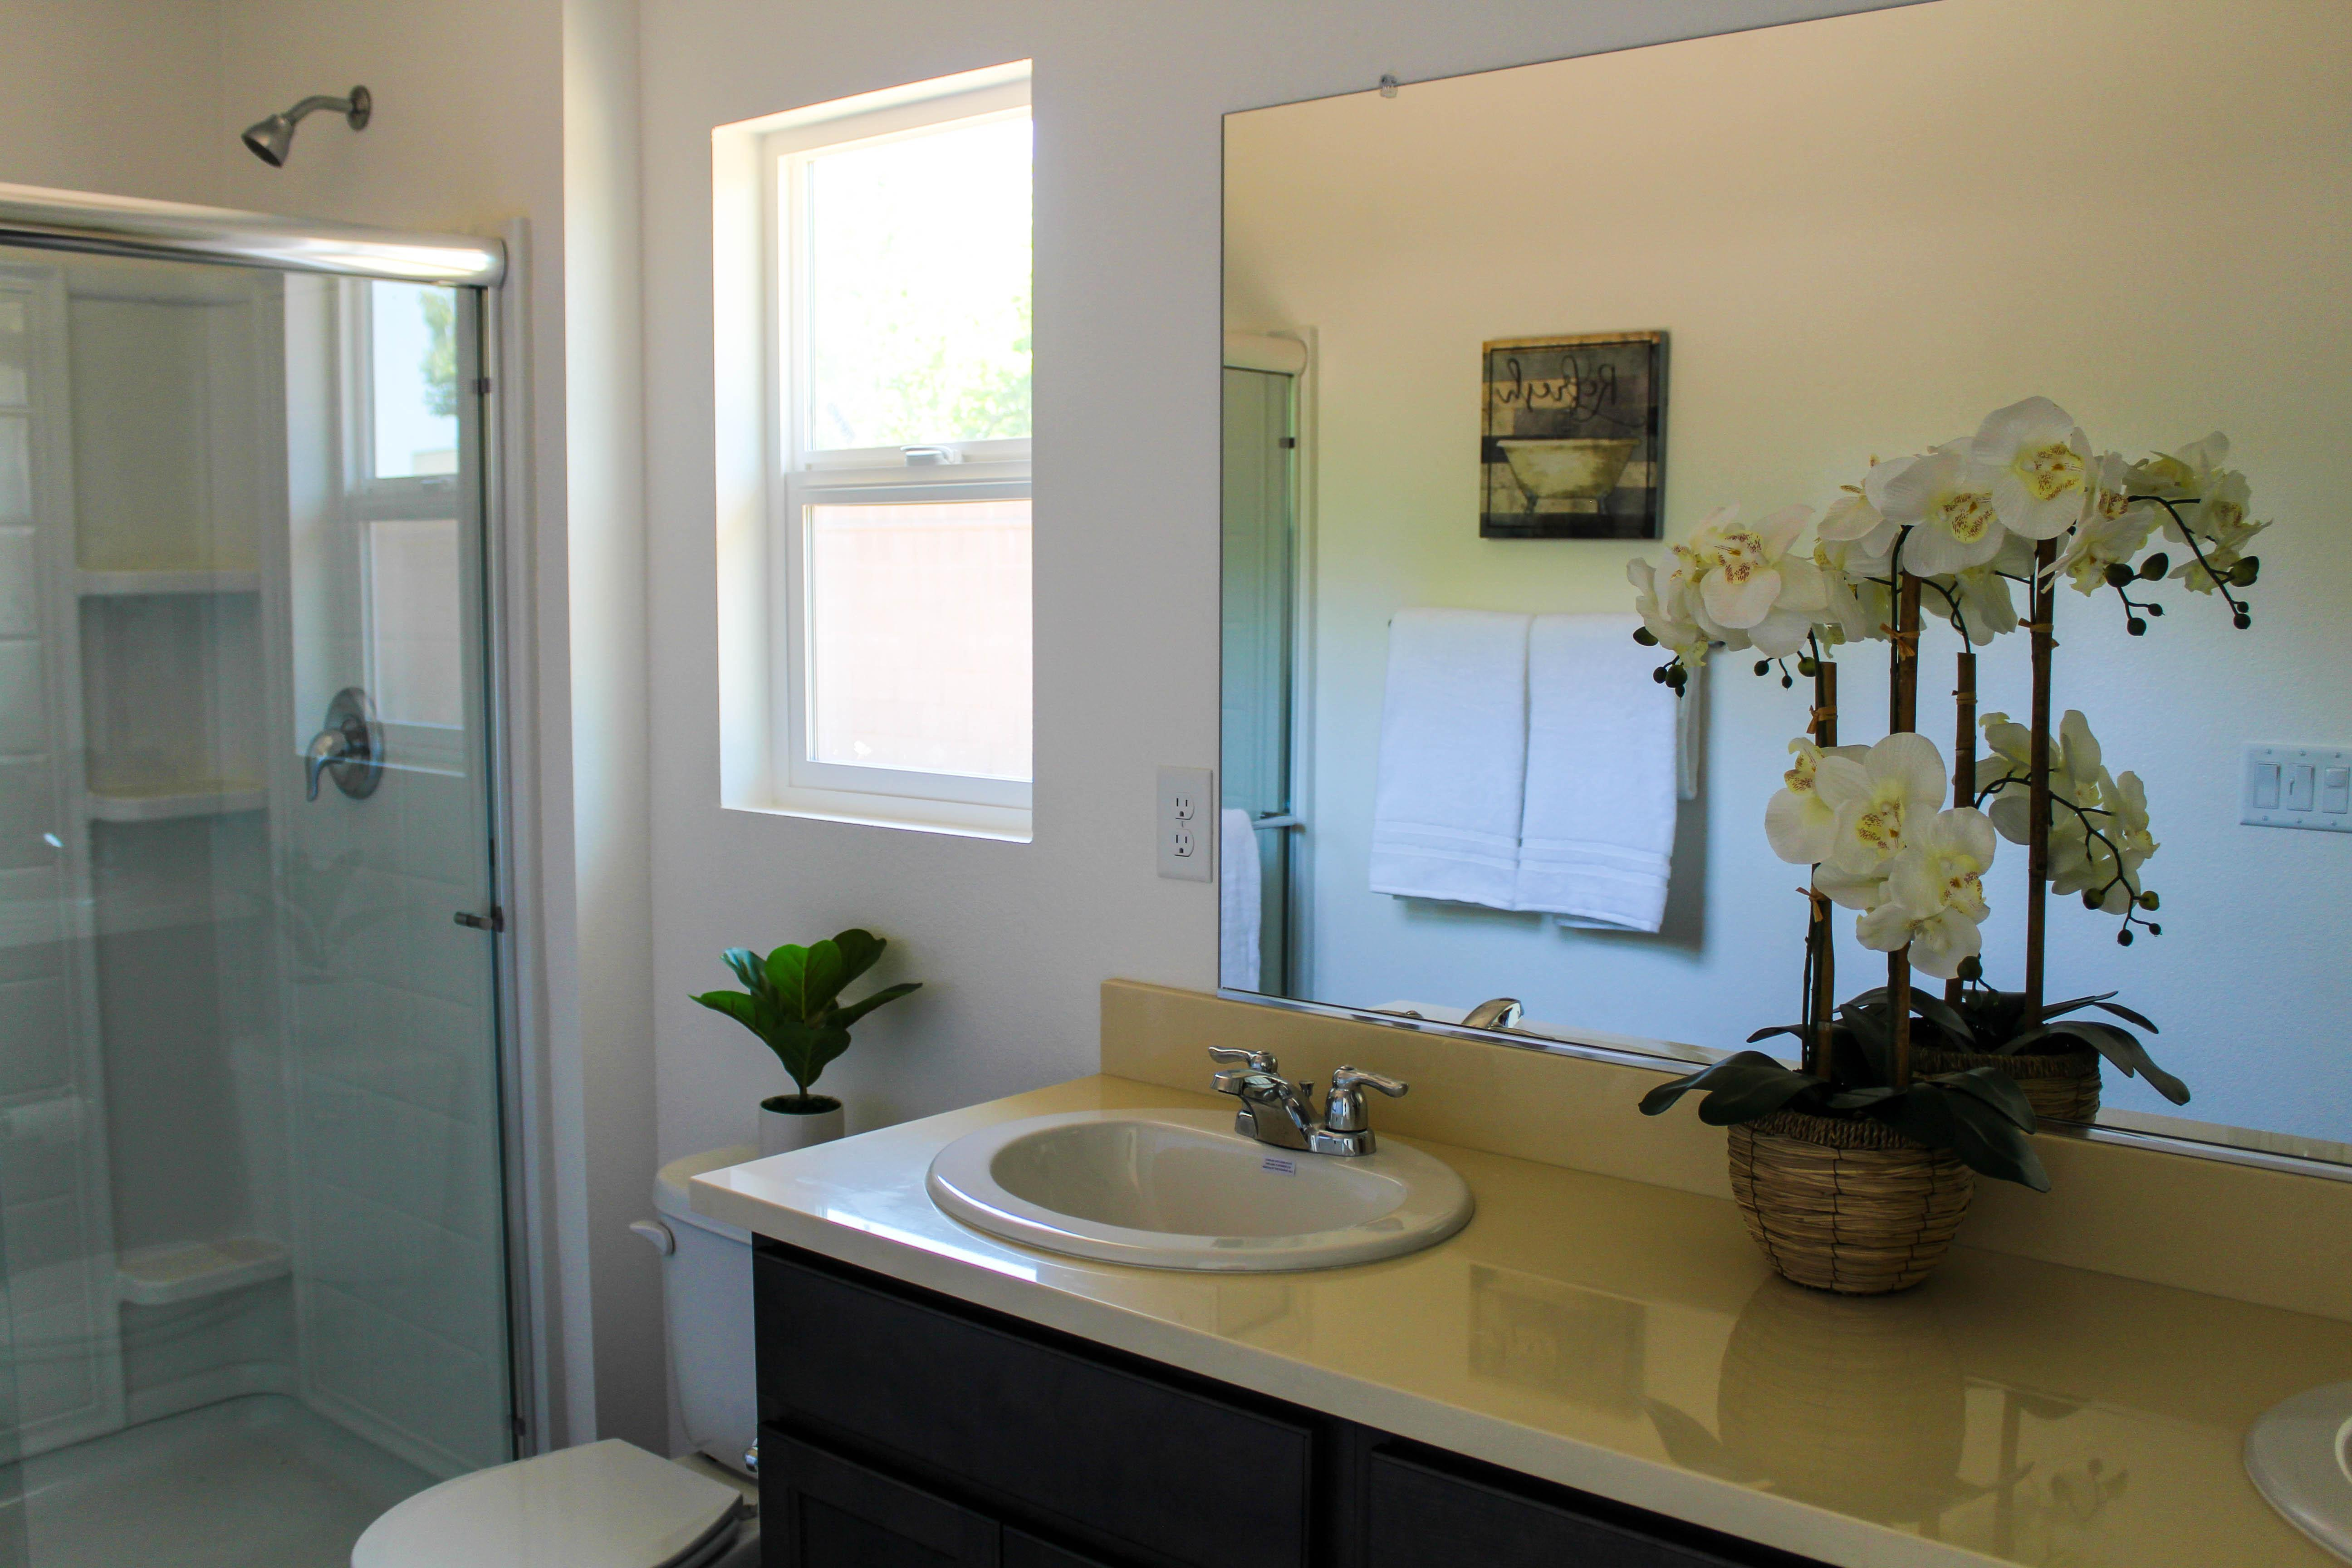 Bathroom featured in the 2A By Crowne Communities in Chico, CA